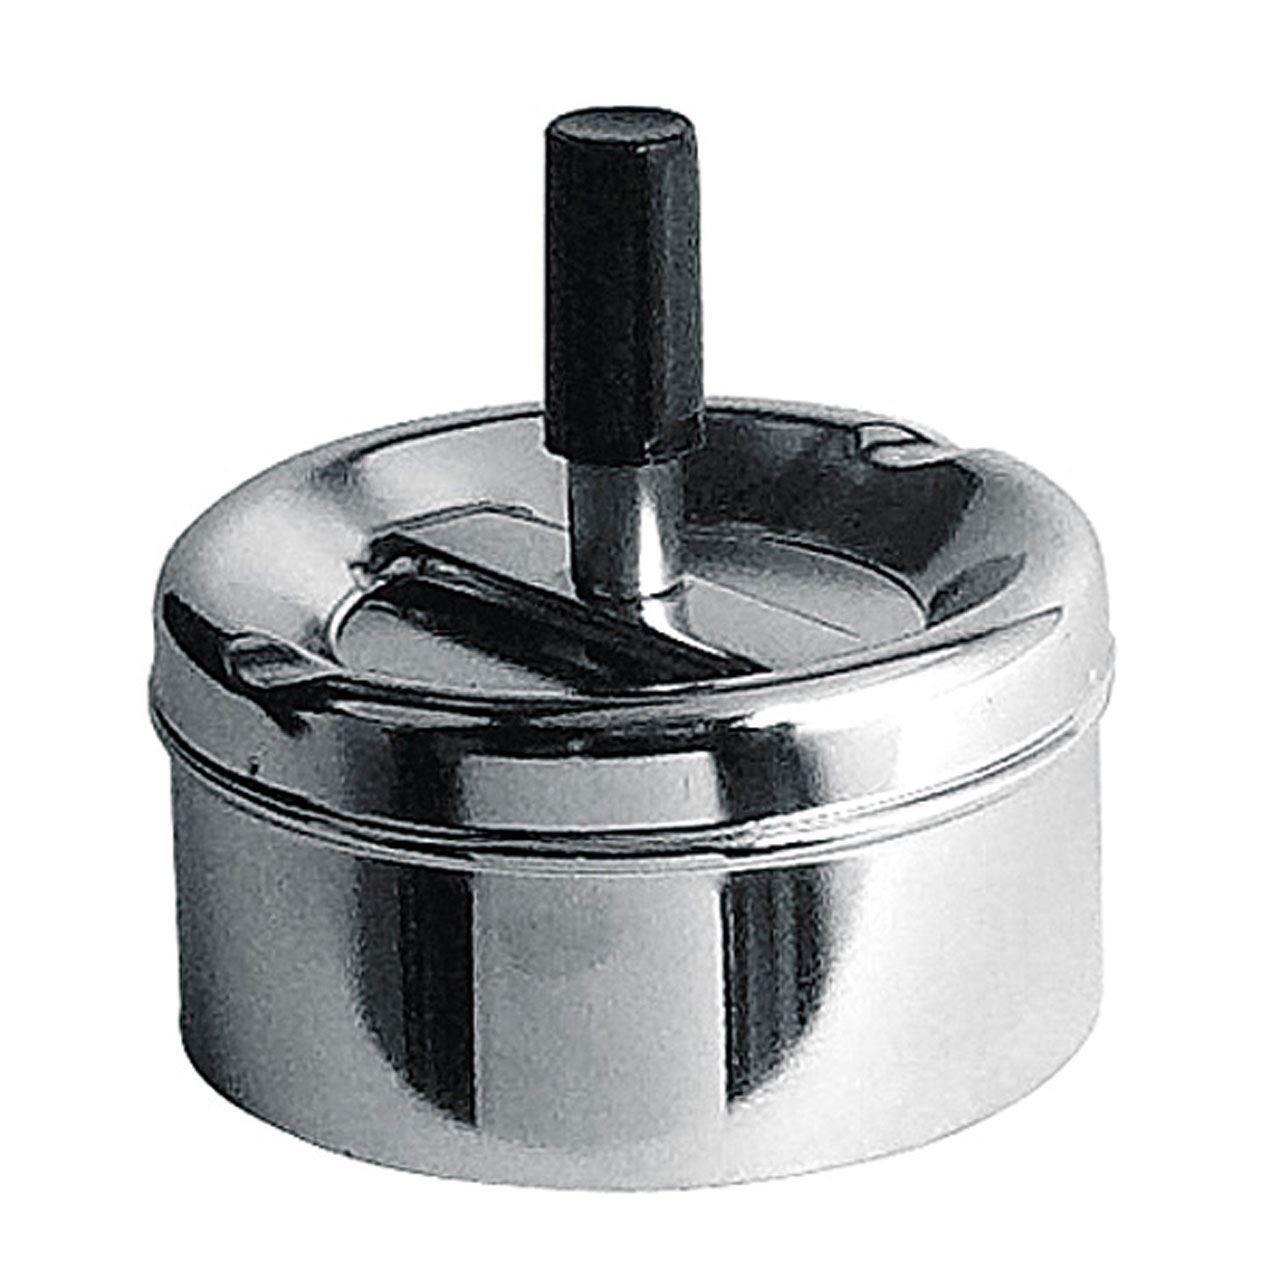 Spinning Ashtray,Small Chrome Effect,Black Handle Detail